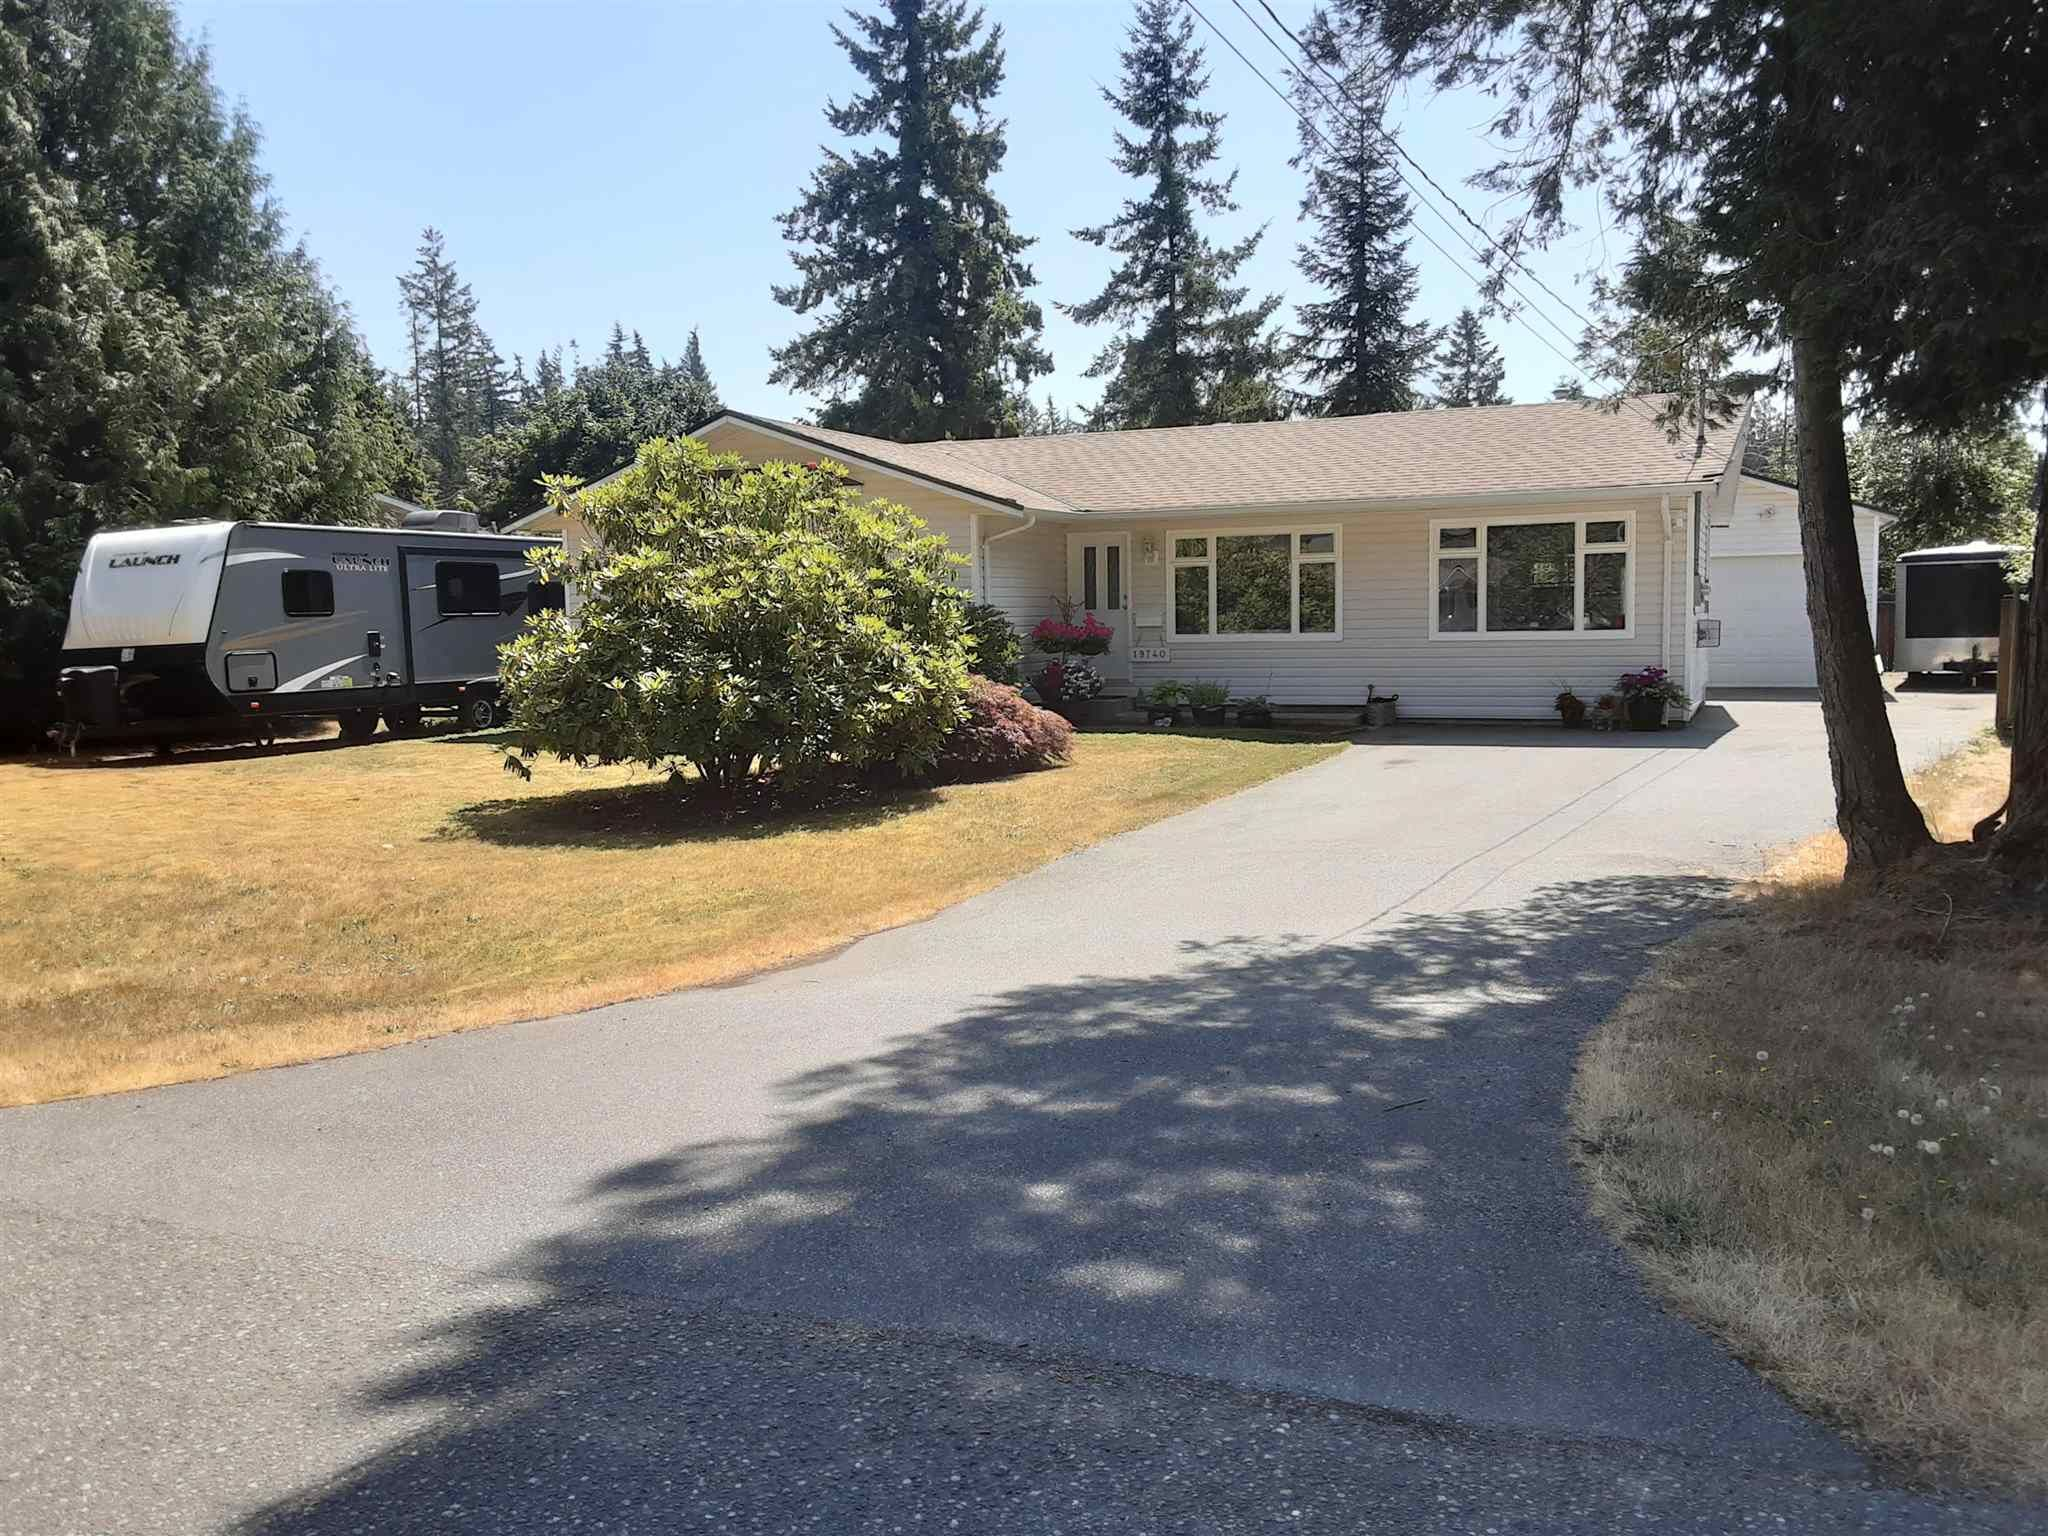 """Photo 2: Photos: 19740 40A Avenue in Langley: Brookswood Langley House for sale in """"BROOKSWOOD"""" : MLS®# R2602130"""